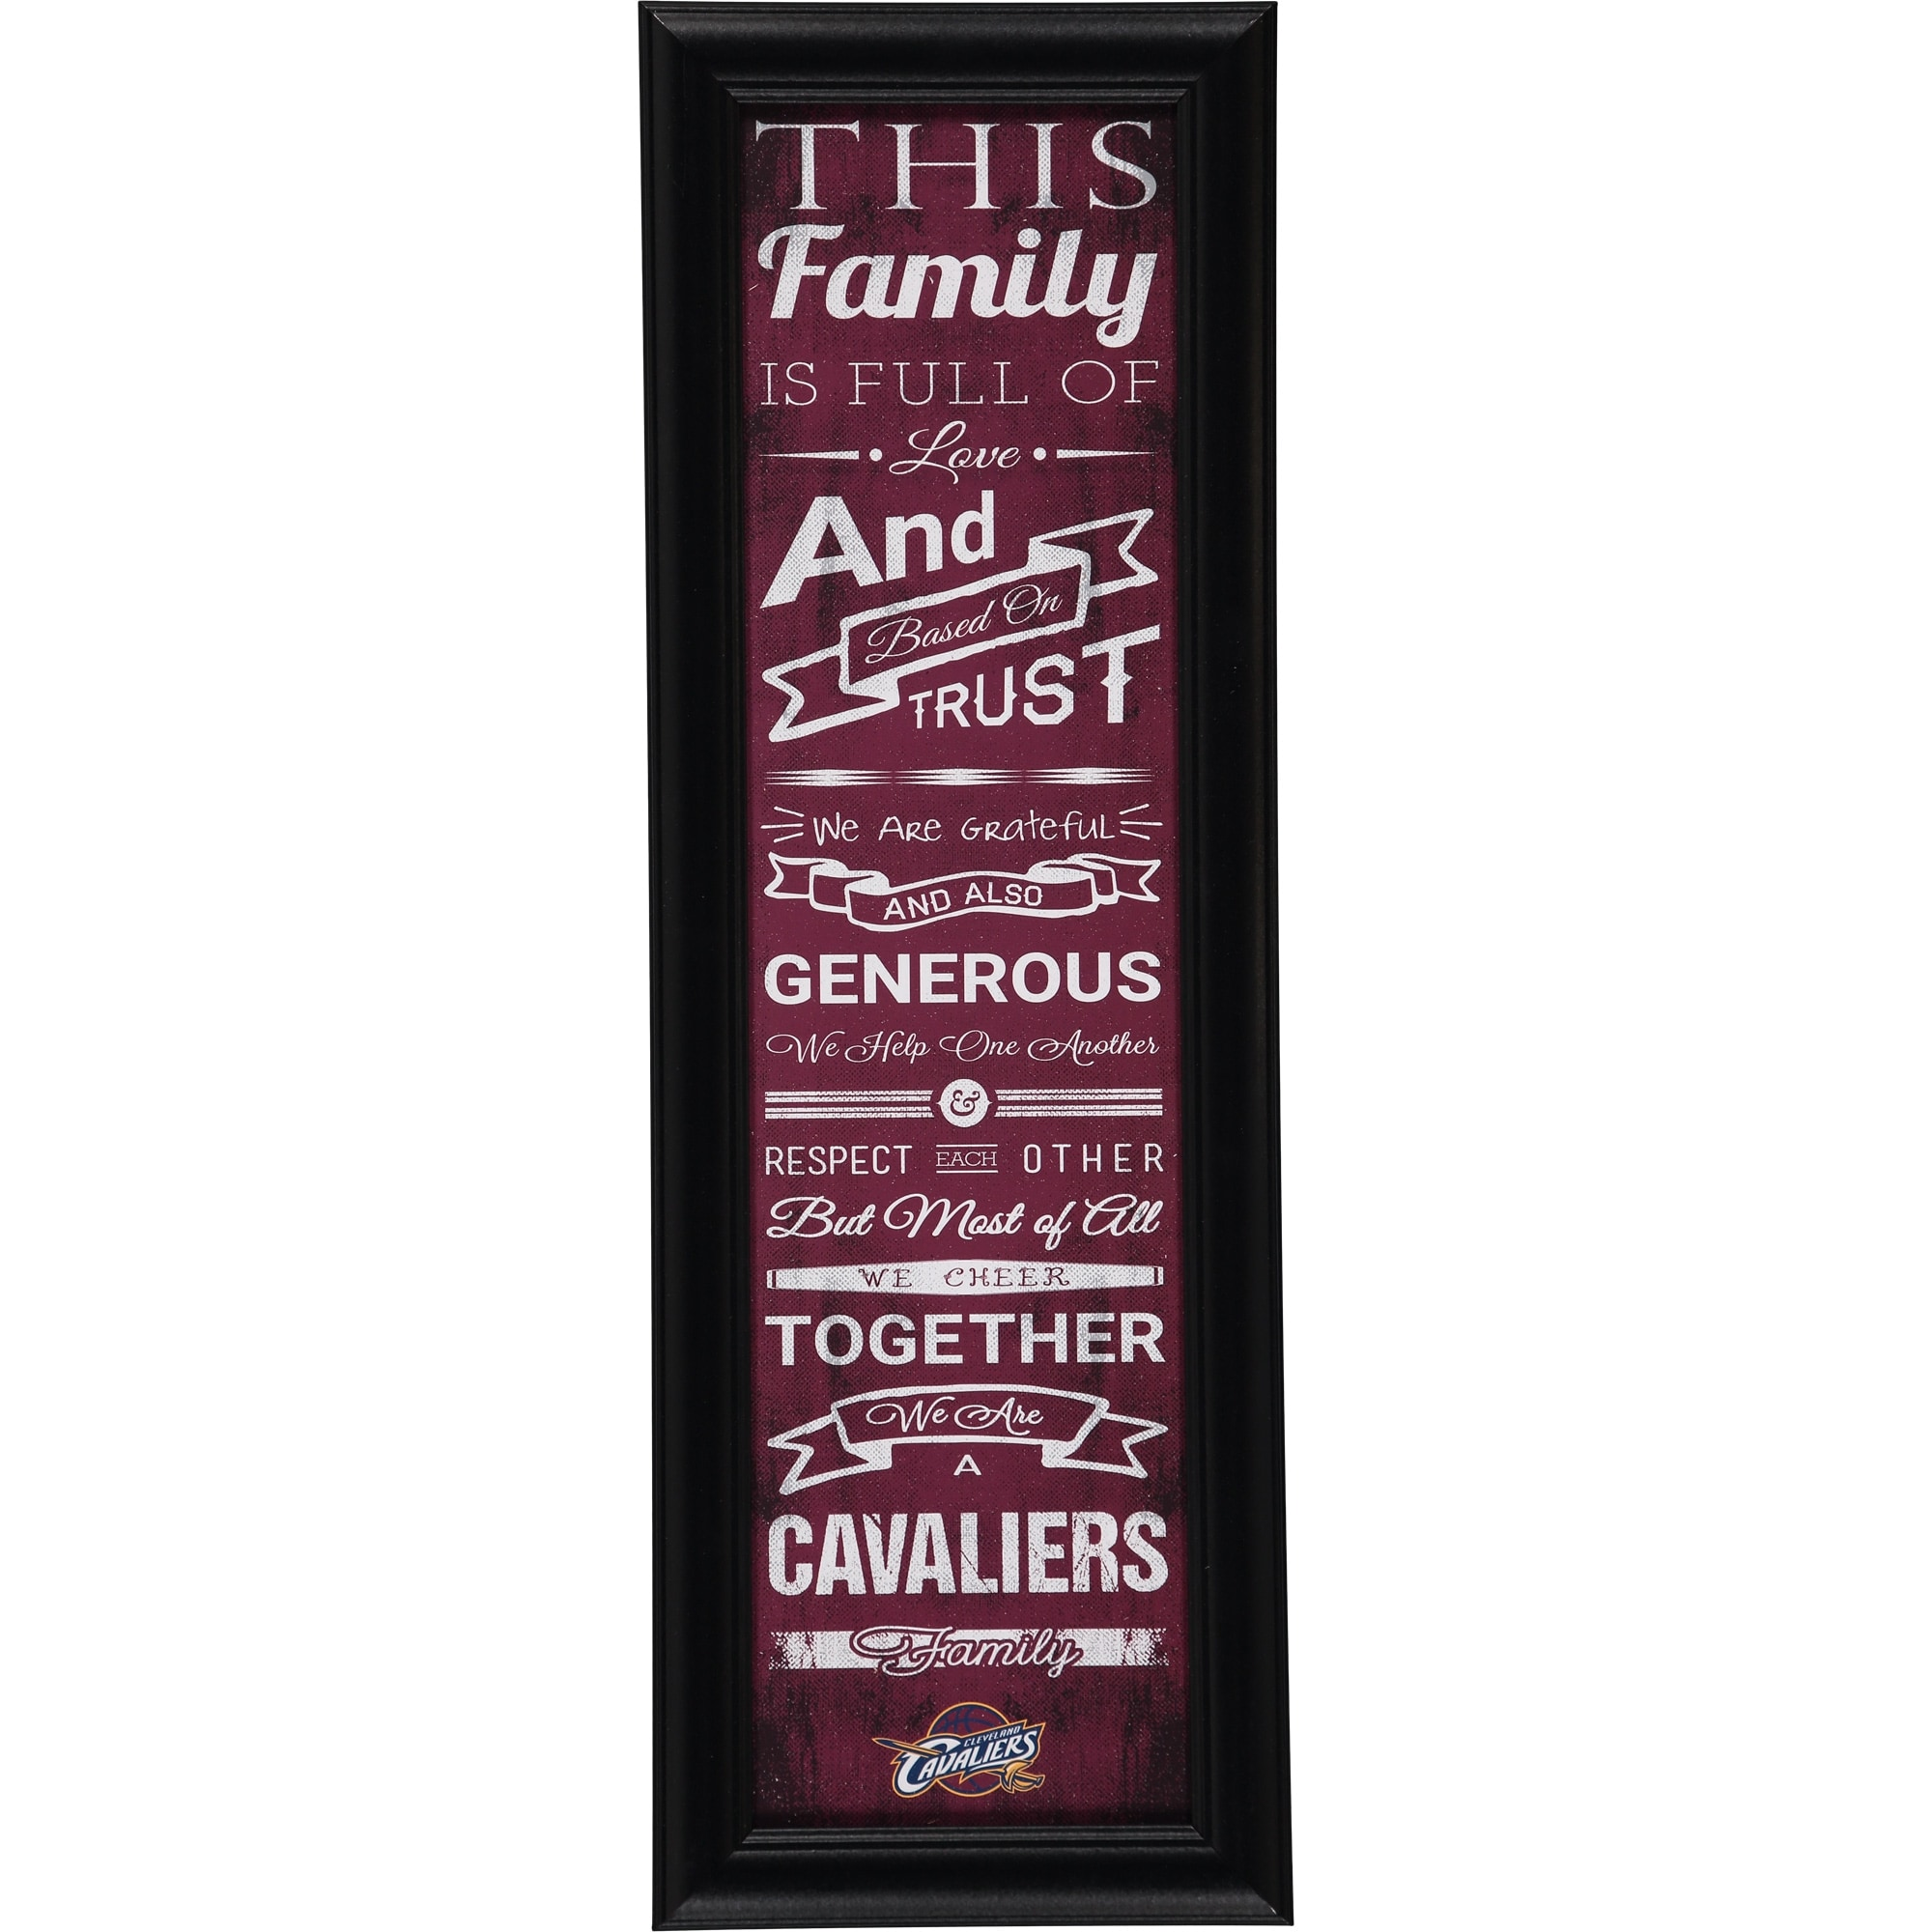 Cleveland Cavaliers Crackle Family Cheer Framed Art